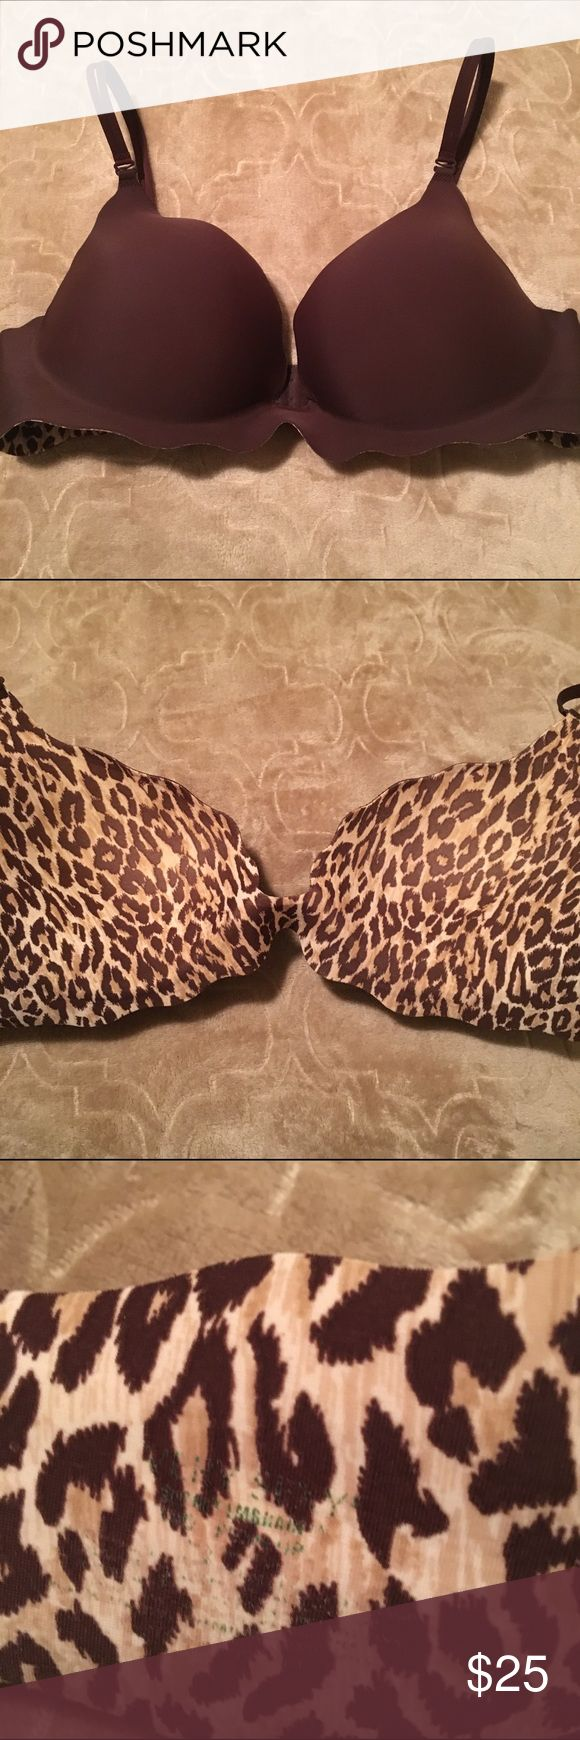 Victoria's Secret Very Sexy Secret Embrace 38D EUC Victoria's Secret Very Sexy Secret Embrace Push-up bra in size 38D. Brown with leopard print interior and double straps that can be switched to wear cross back as well. Excellent condition, minimal signs of wear and no damage to cups!! Fading of words on interior label. Victoria's Secret Intimates & Sleepwear Bras